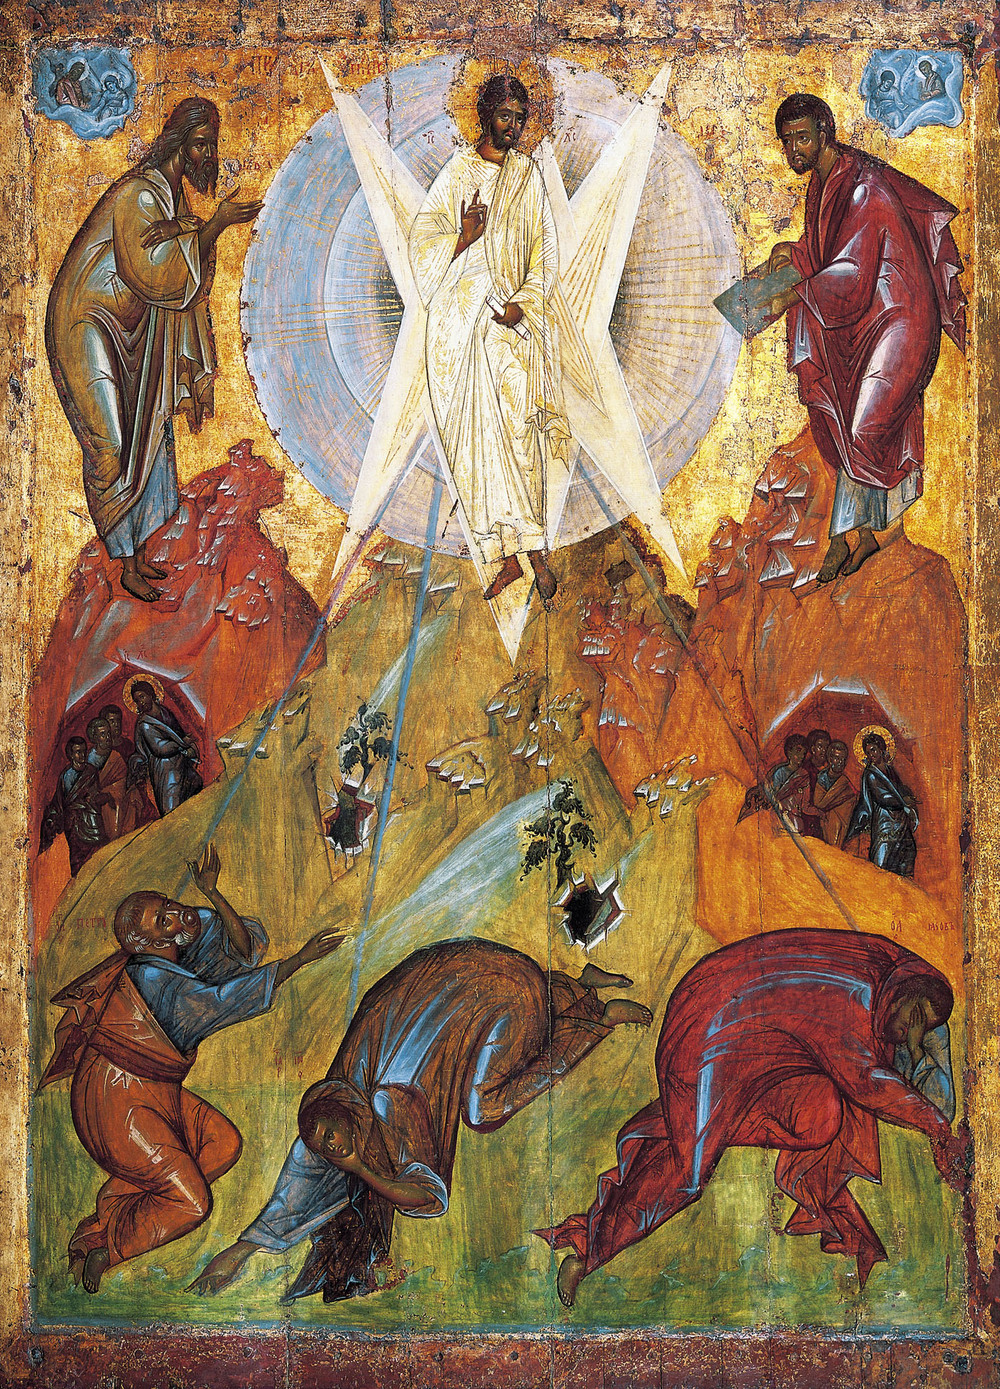 Transfiguration_by_Feofan_Grek_from_Spaso-Preobrazhensky_Cathedral_in_Pereslavl-Zalessky_(15th_c,_Tretyakov_gallery).jpg